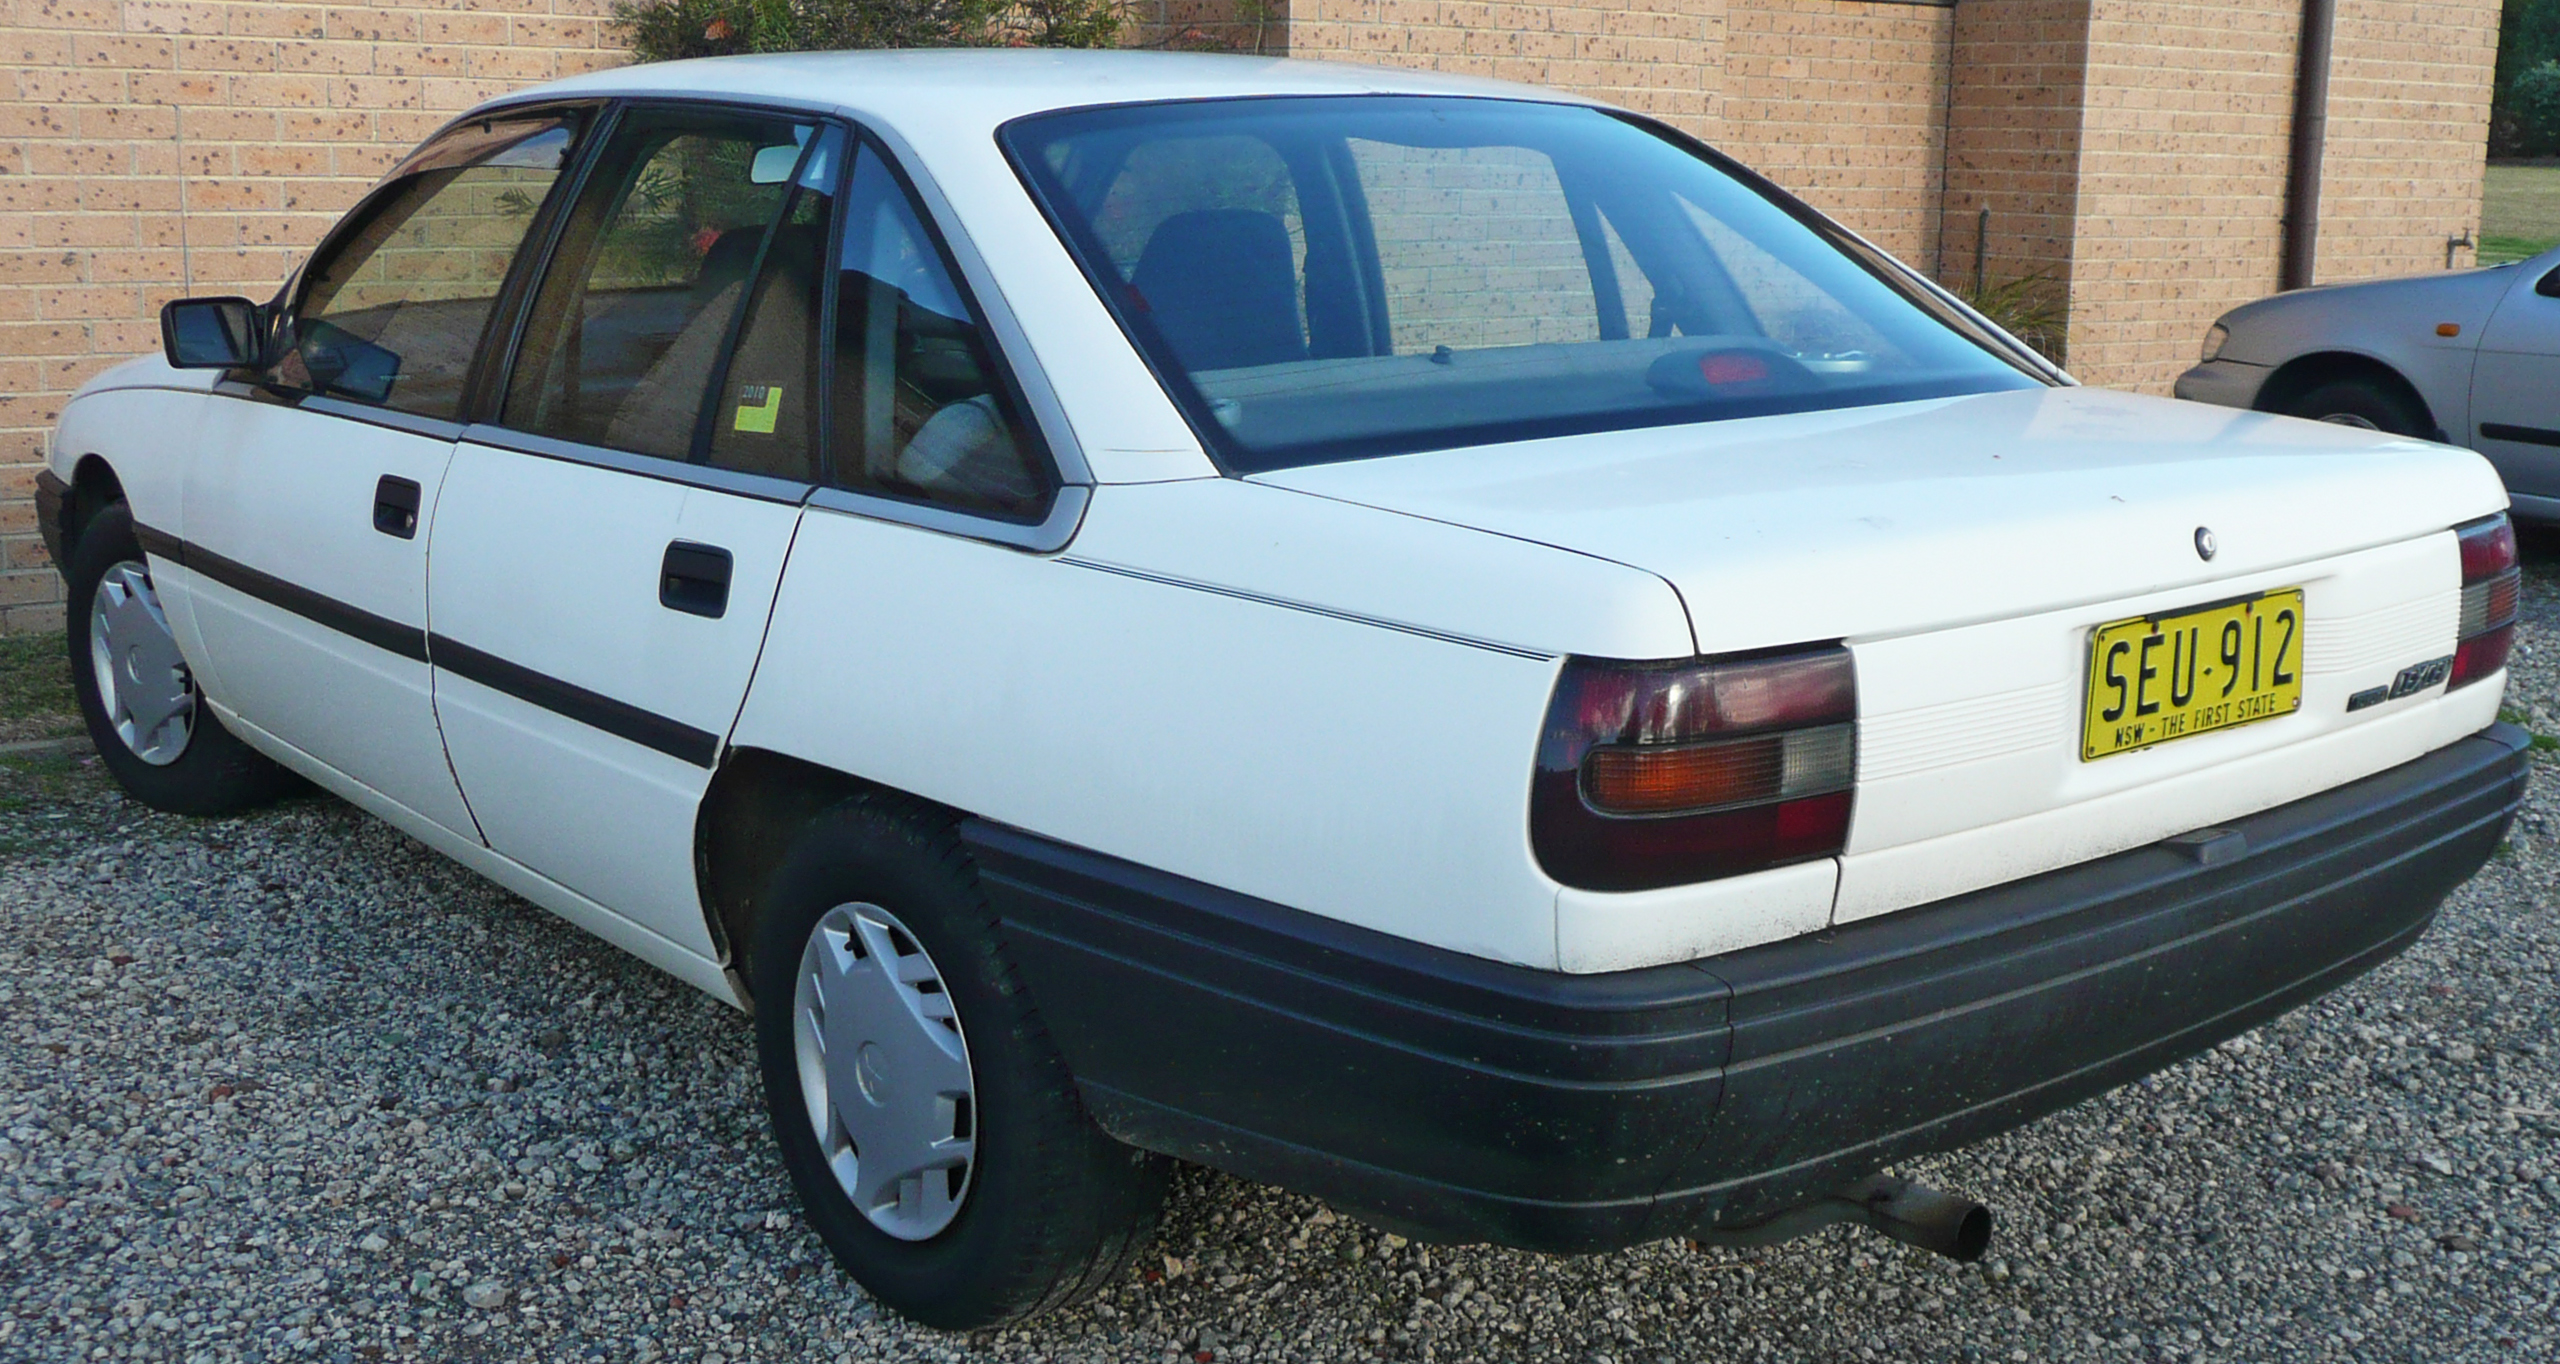 Toyota lexcen photo - 2